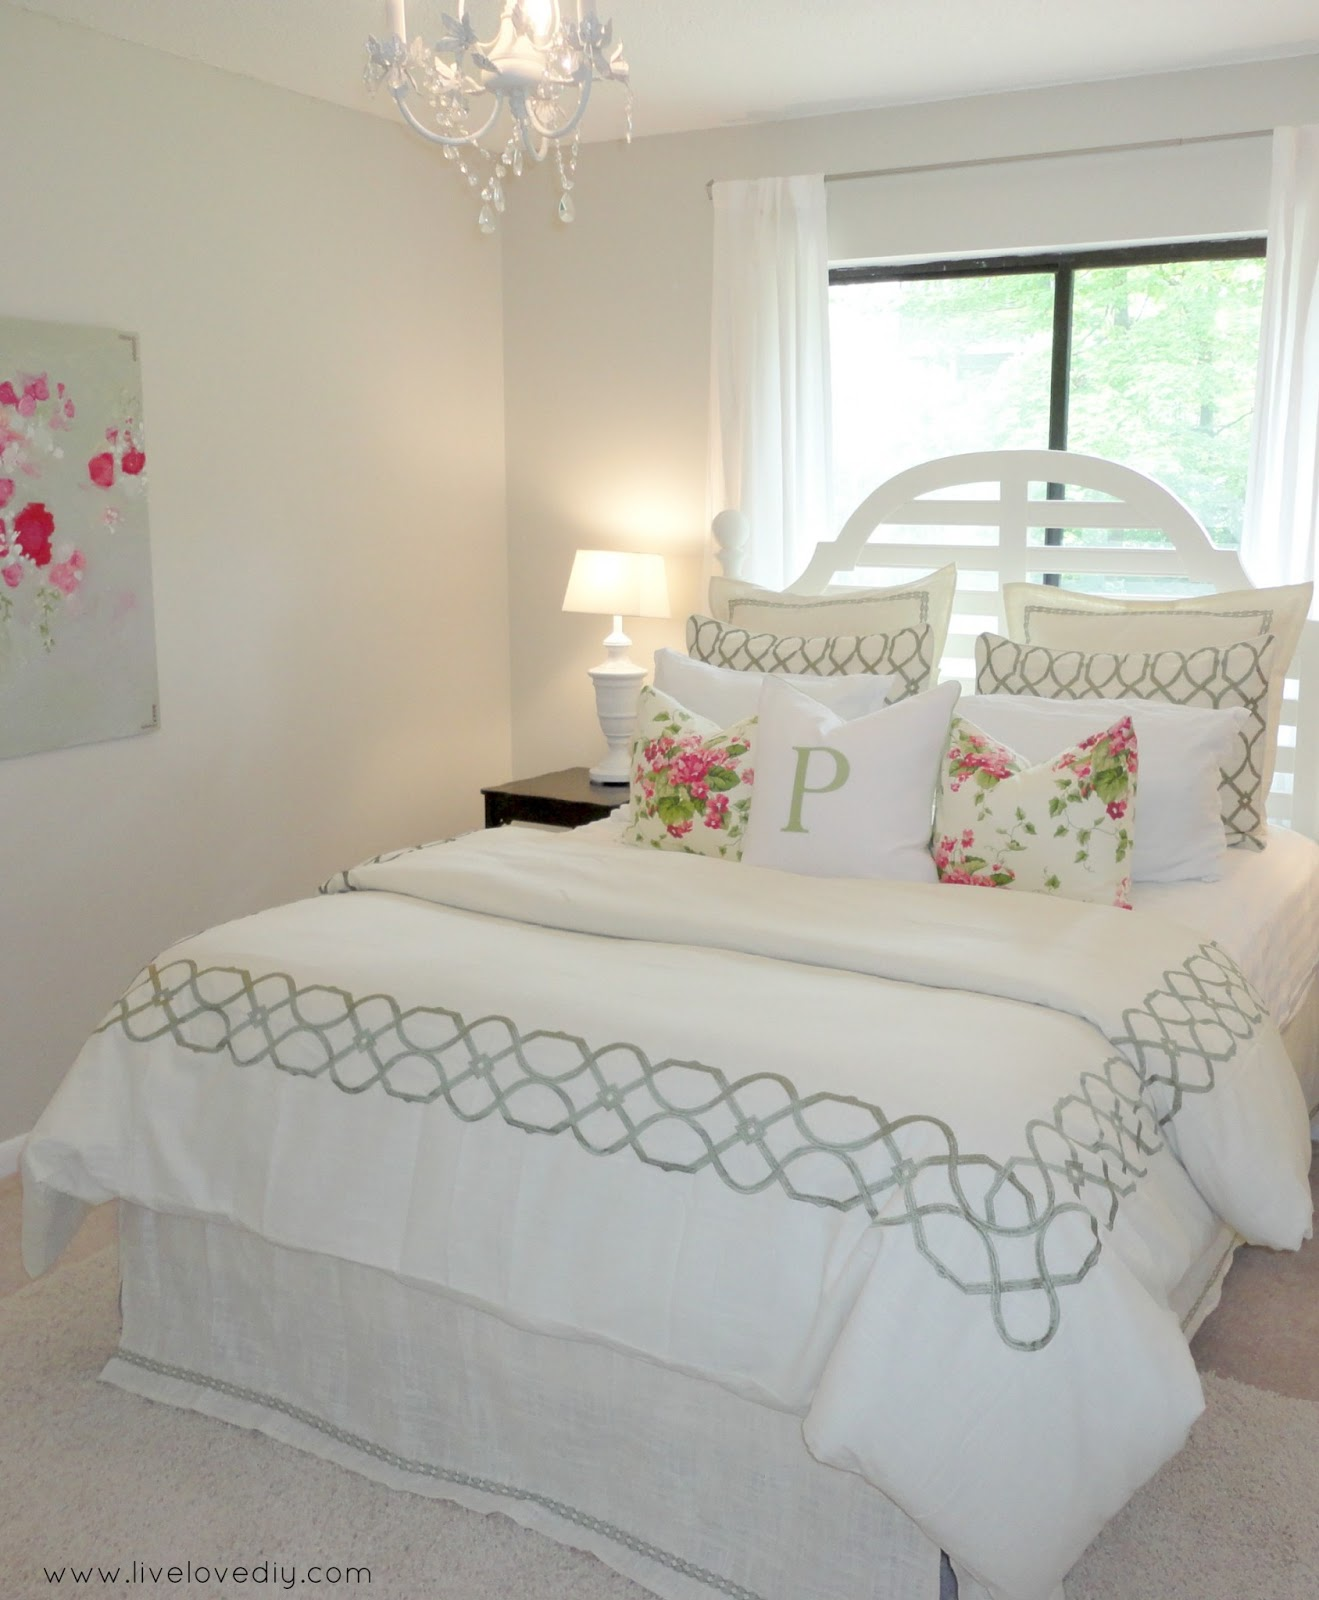 Livelovediy decorating bedrooms with secondhand finds How can i decorate my house